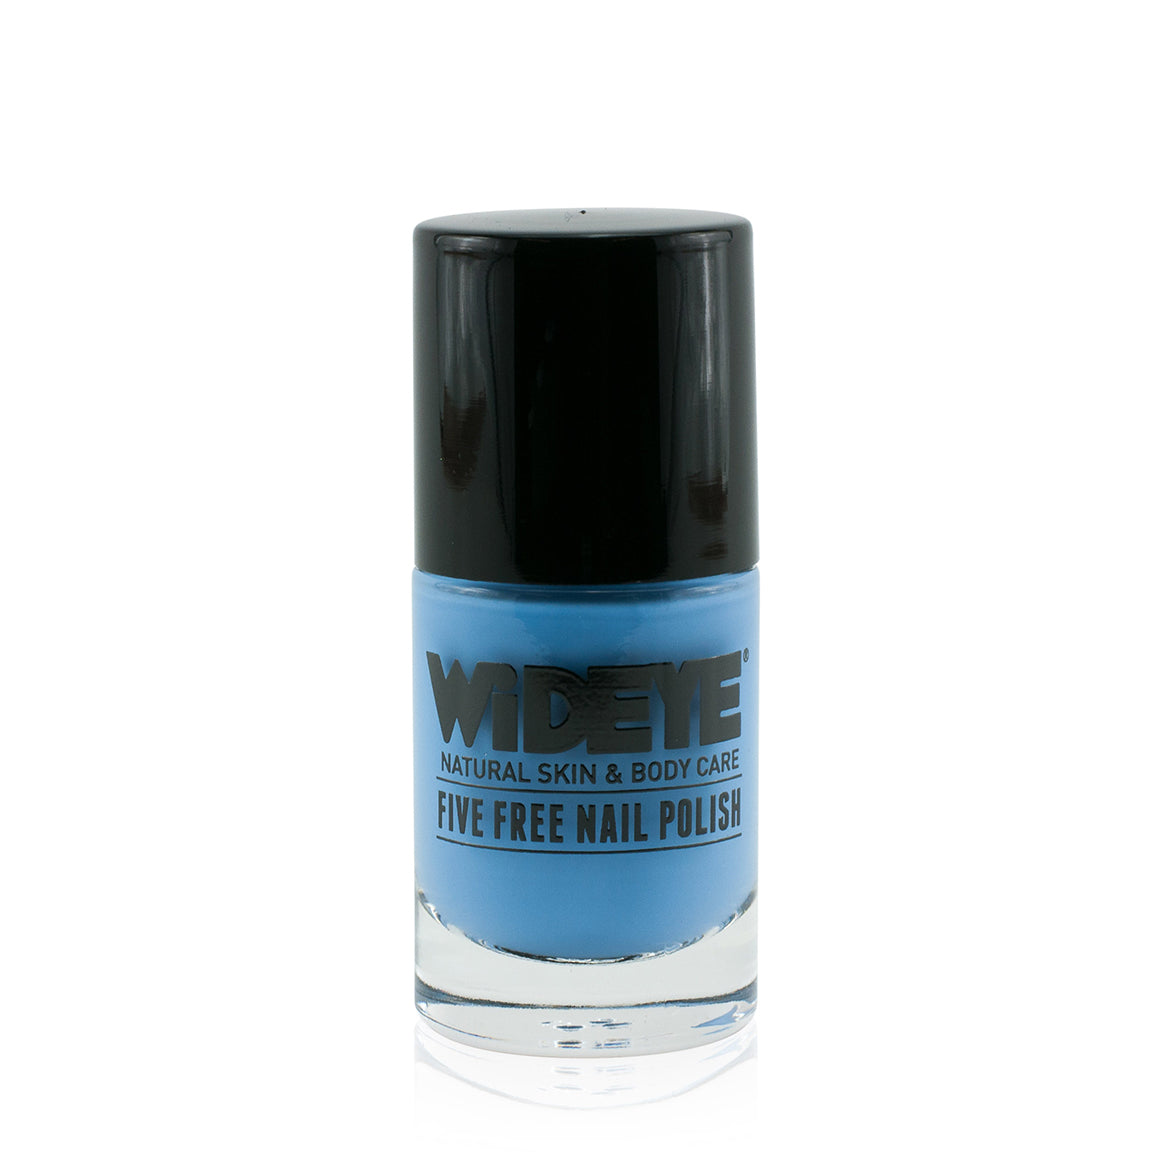 Sky blue nail polish in glass bottle by WiDEYE.